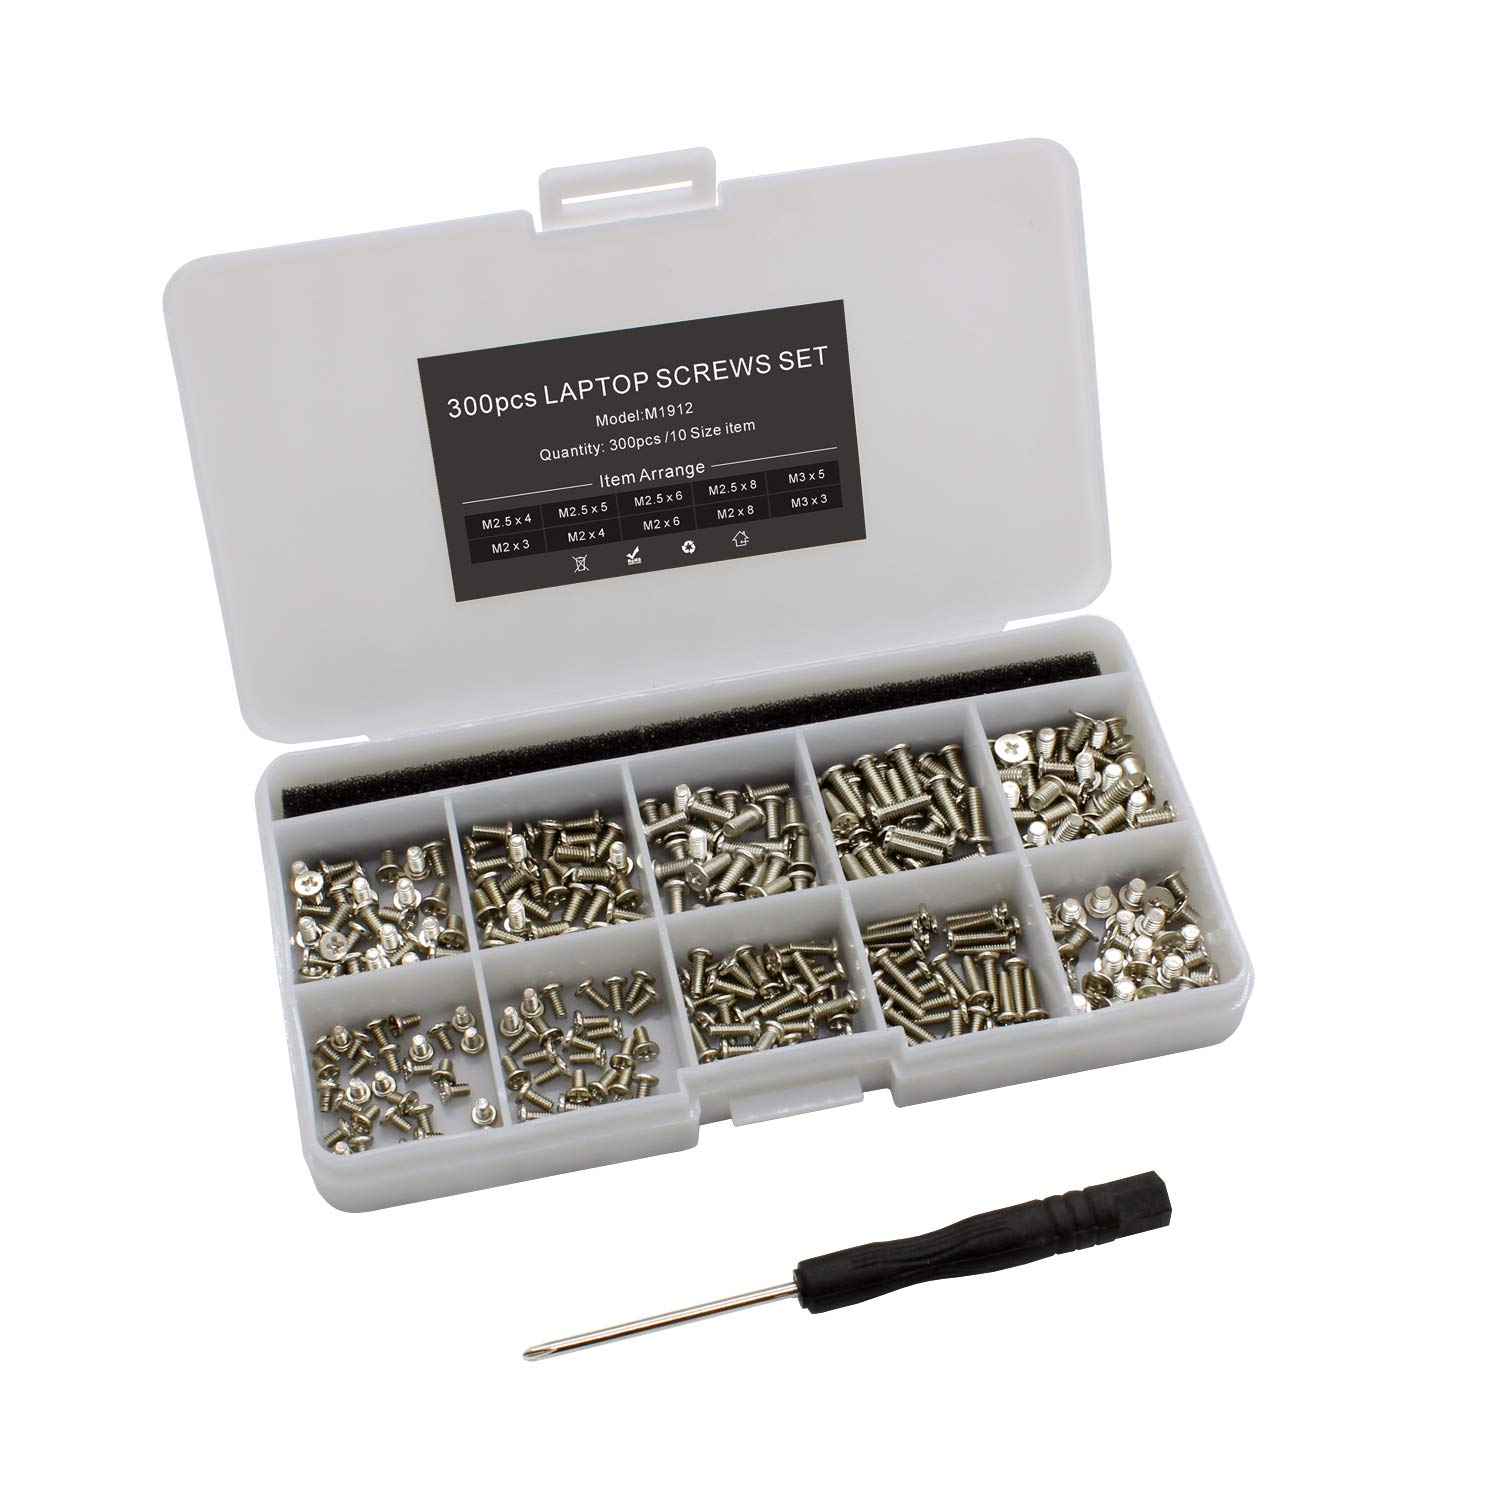 Mcsher 300pcs Laptop Notebook Screws Kit Set for HP Dell Lenovo Samsung Sony Toshiba Gateway - Silver